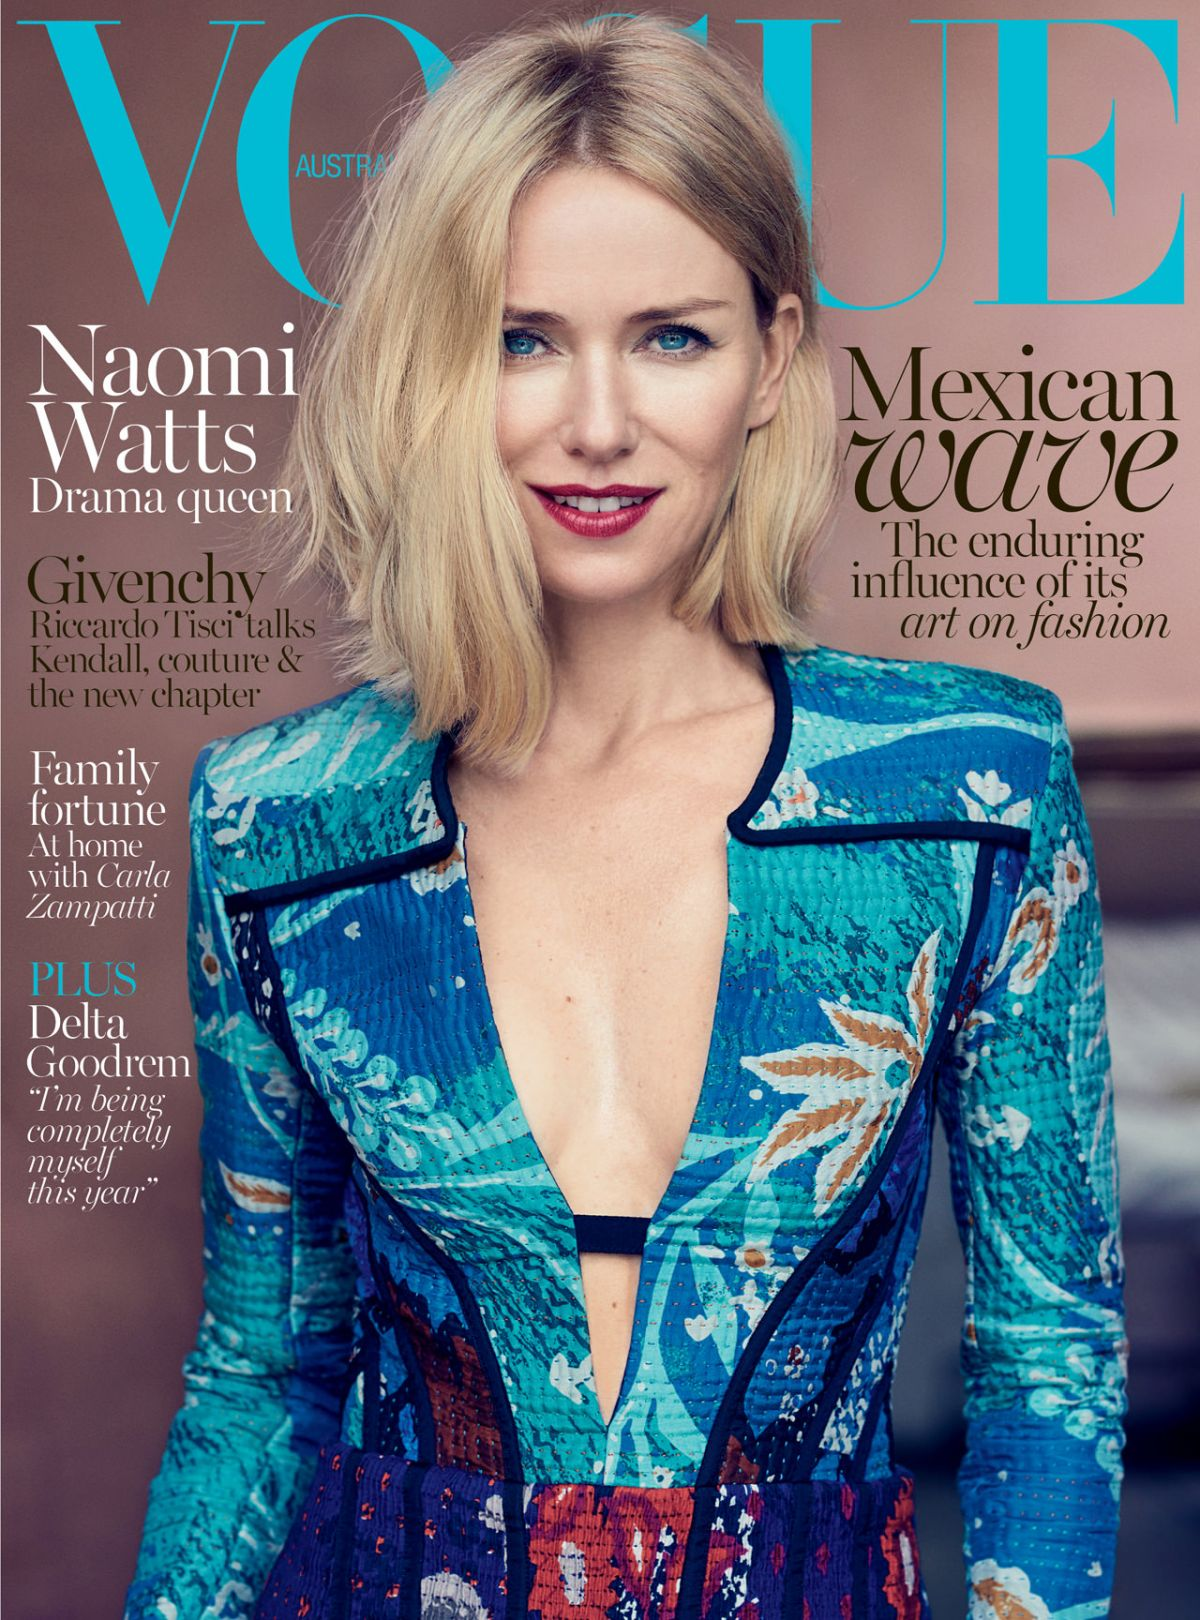 NAOMI WATTS in Vogue Magazne, Australia October 2015 Issue